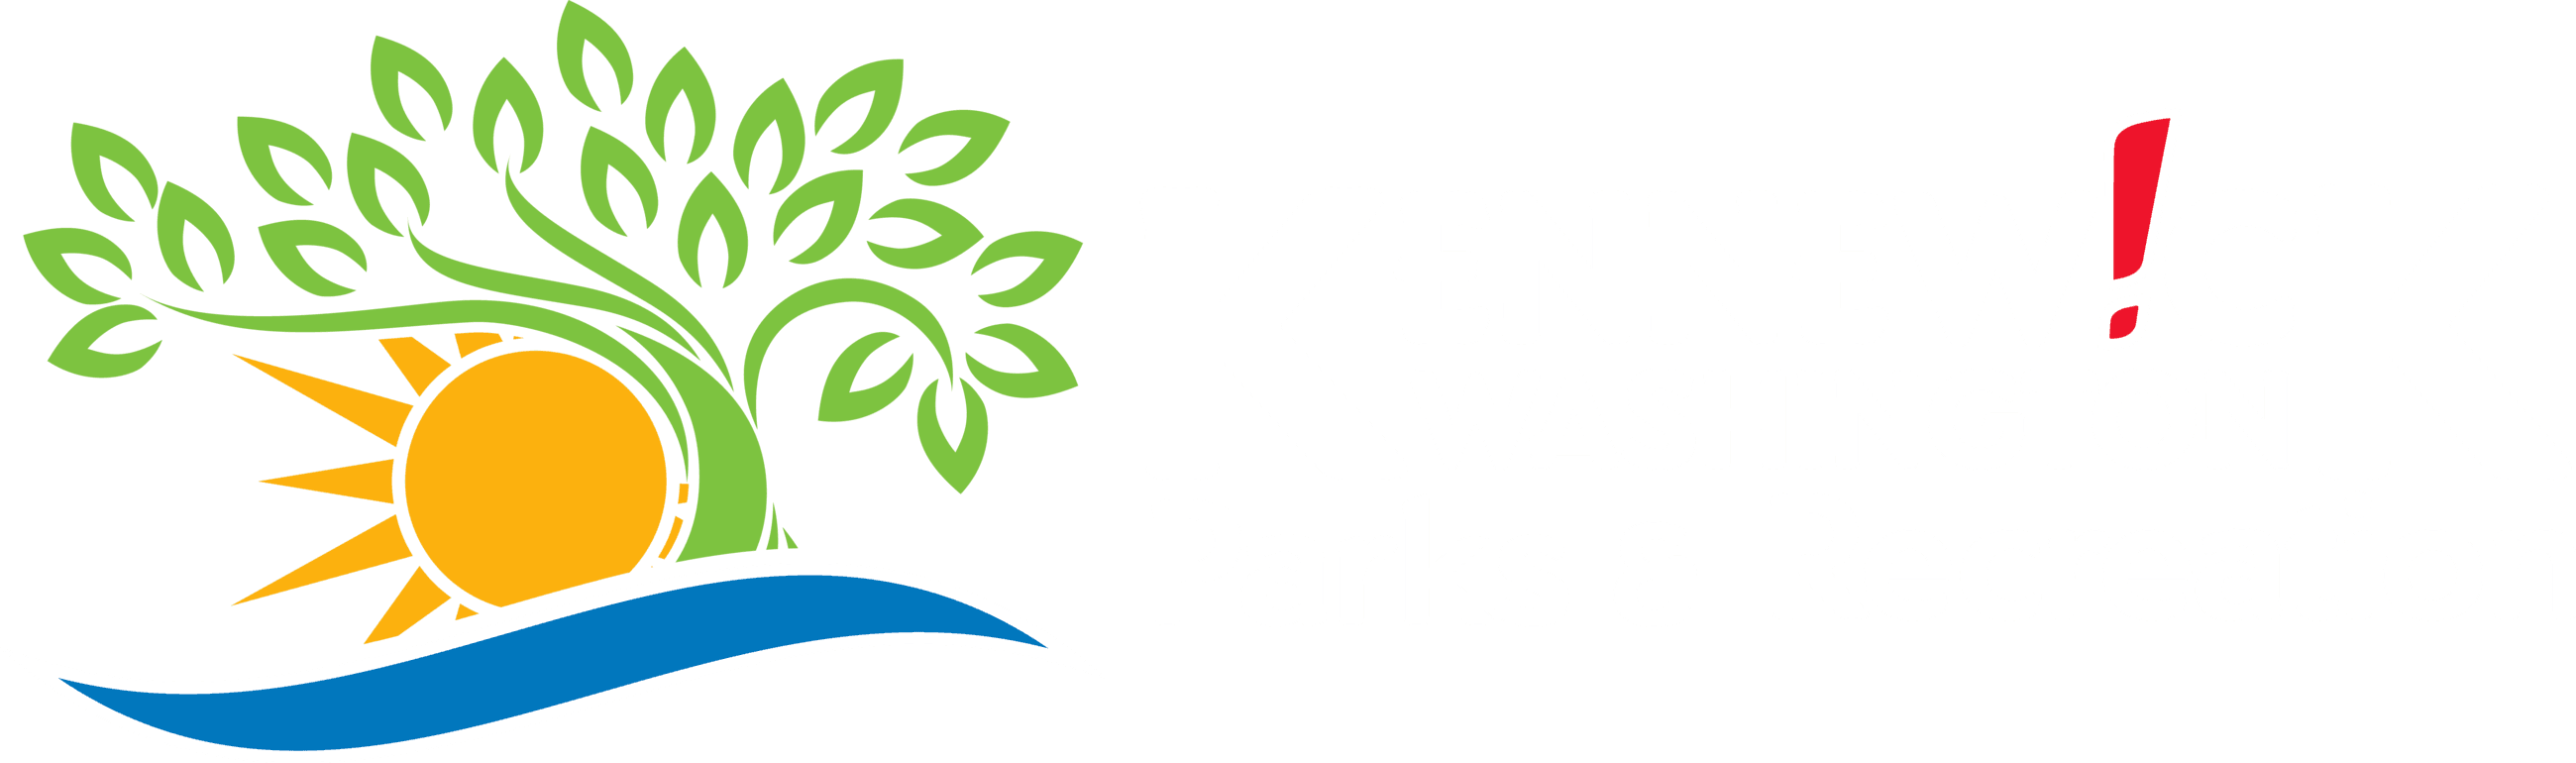 Kennewick Washington Parks and Recreation